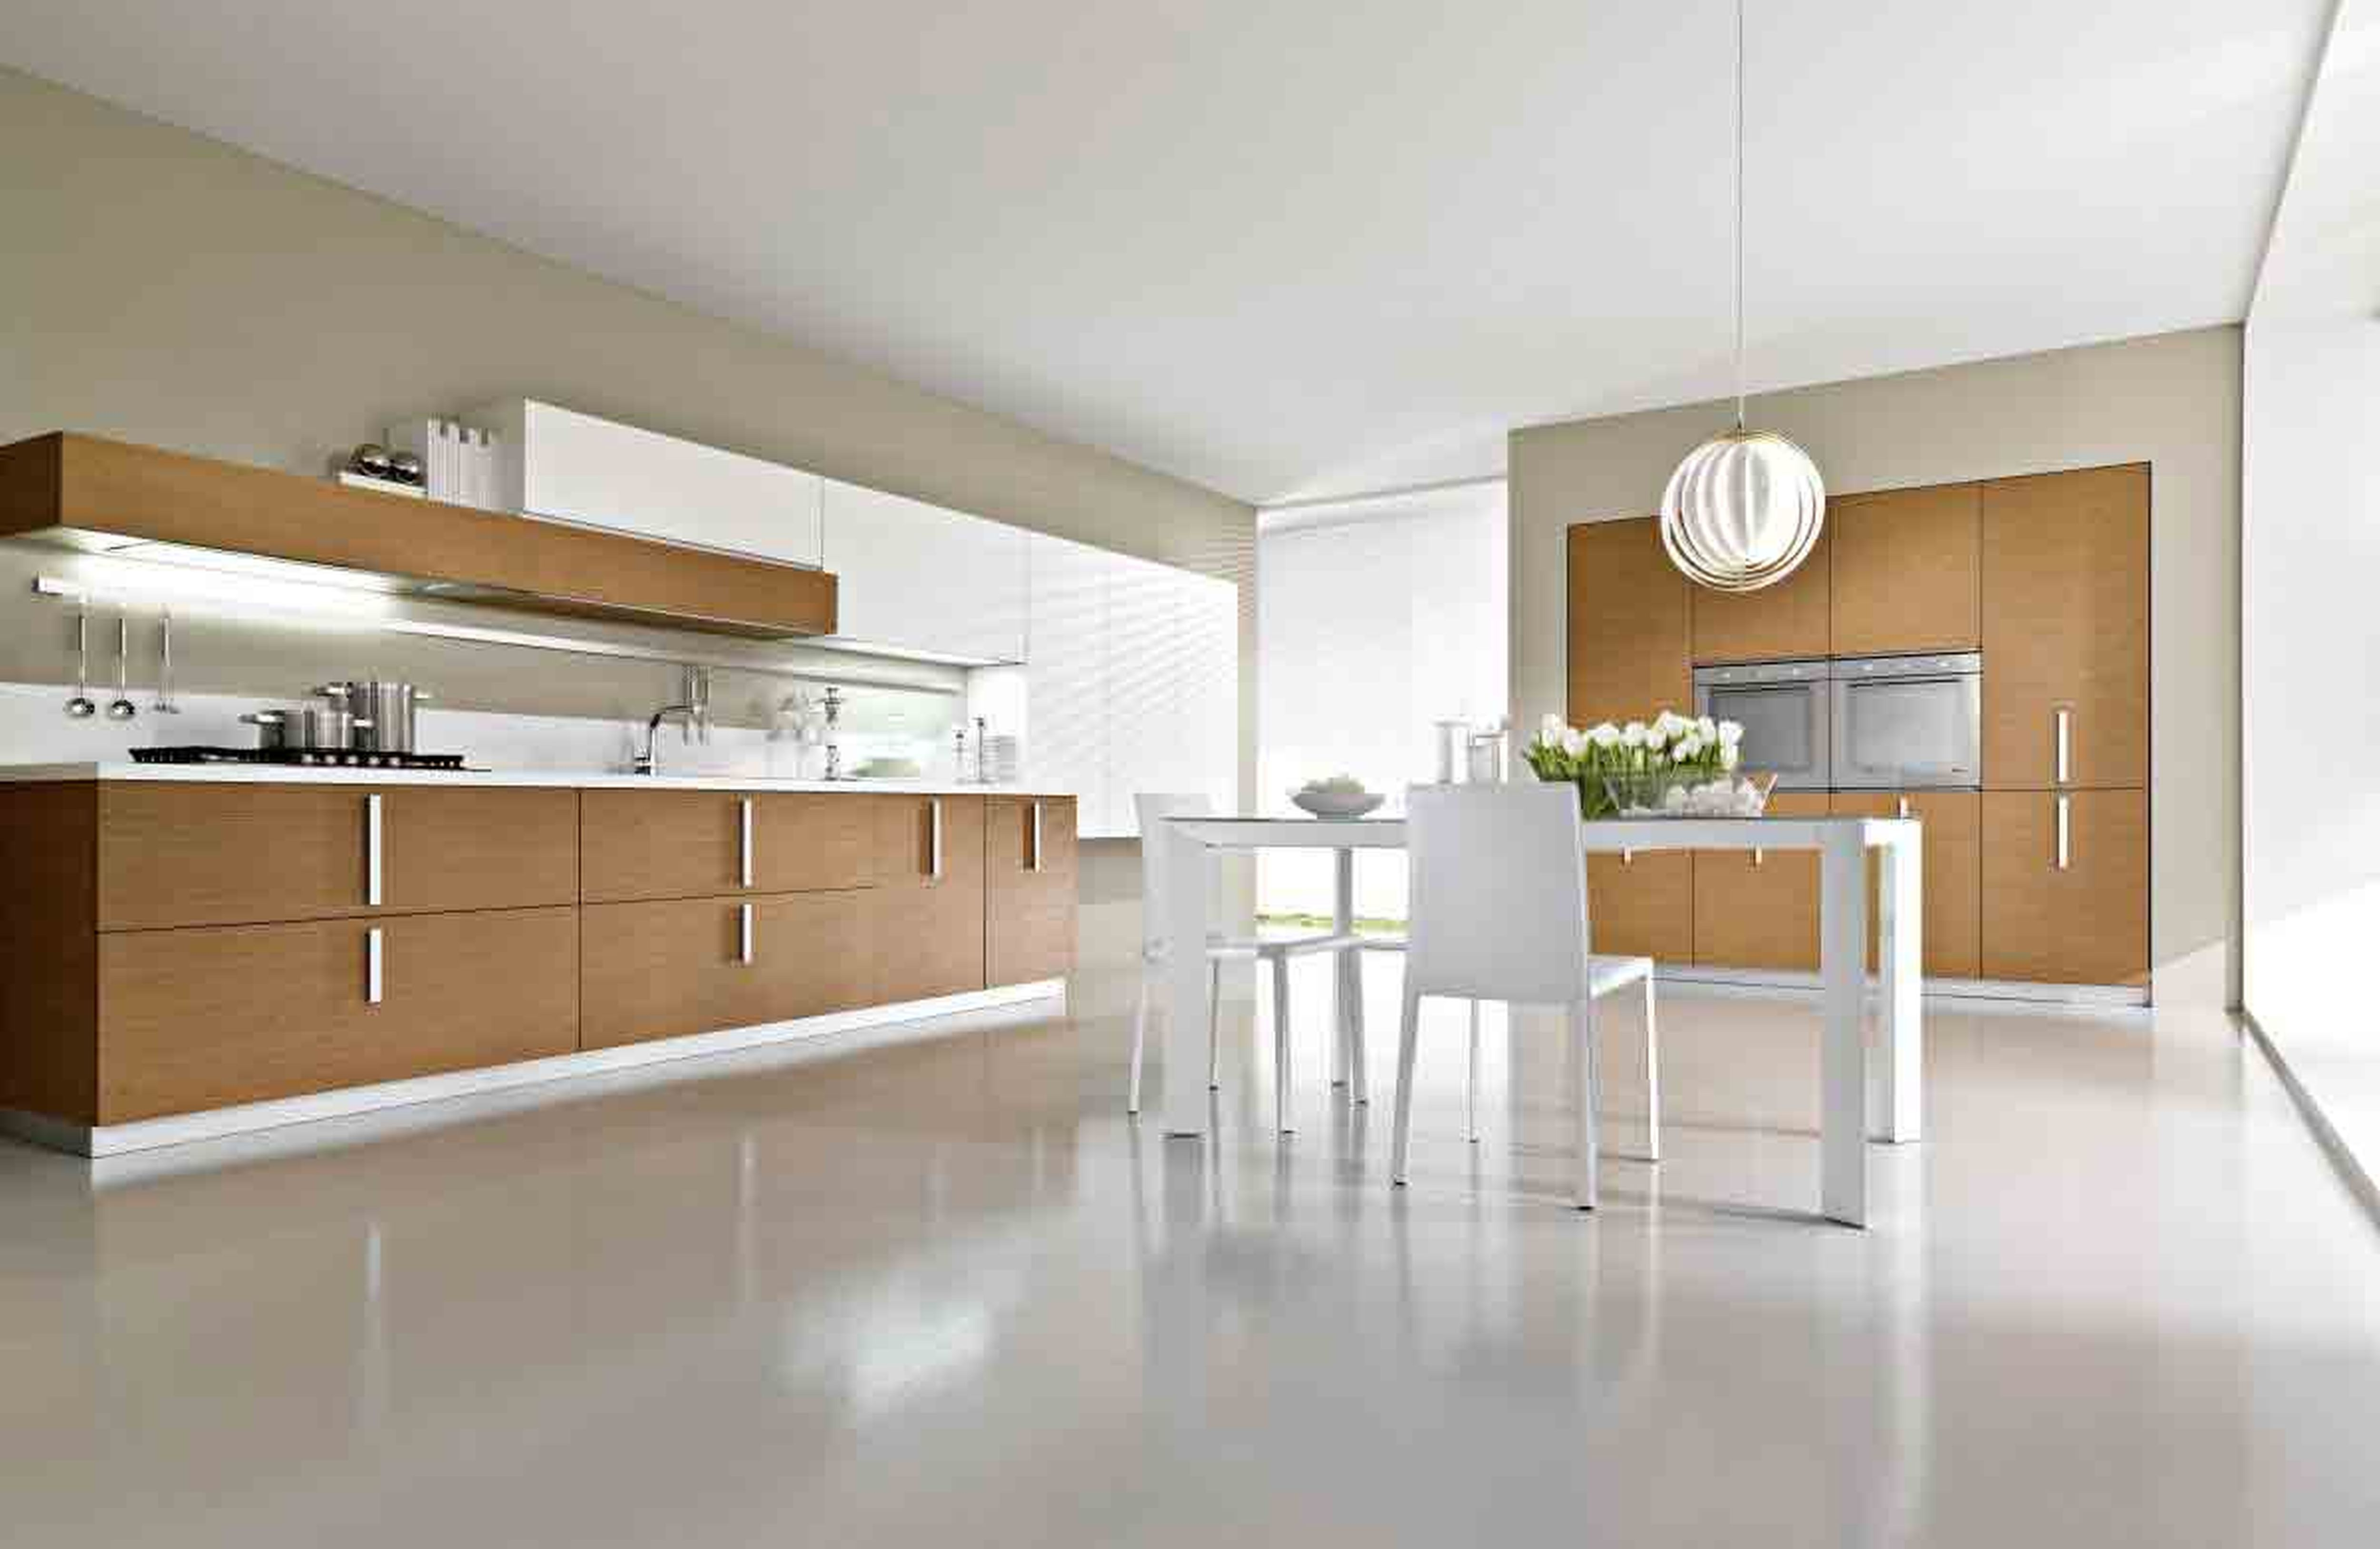 Laminate White Kitchen Flooring Ideas and Options for Large Kitchen Design